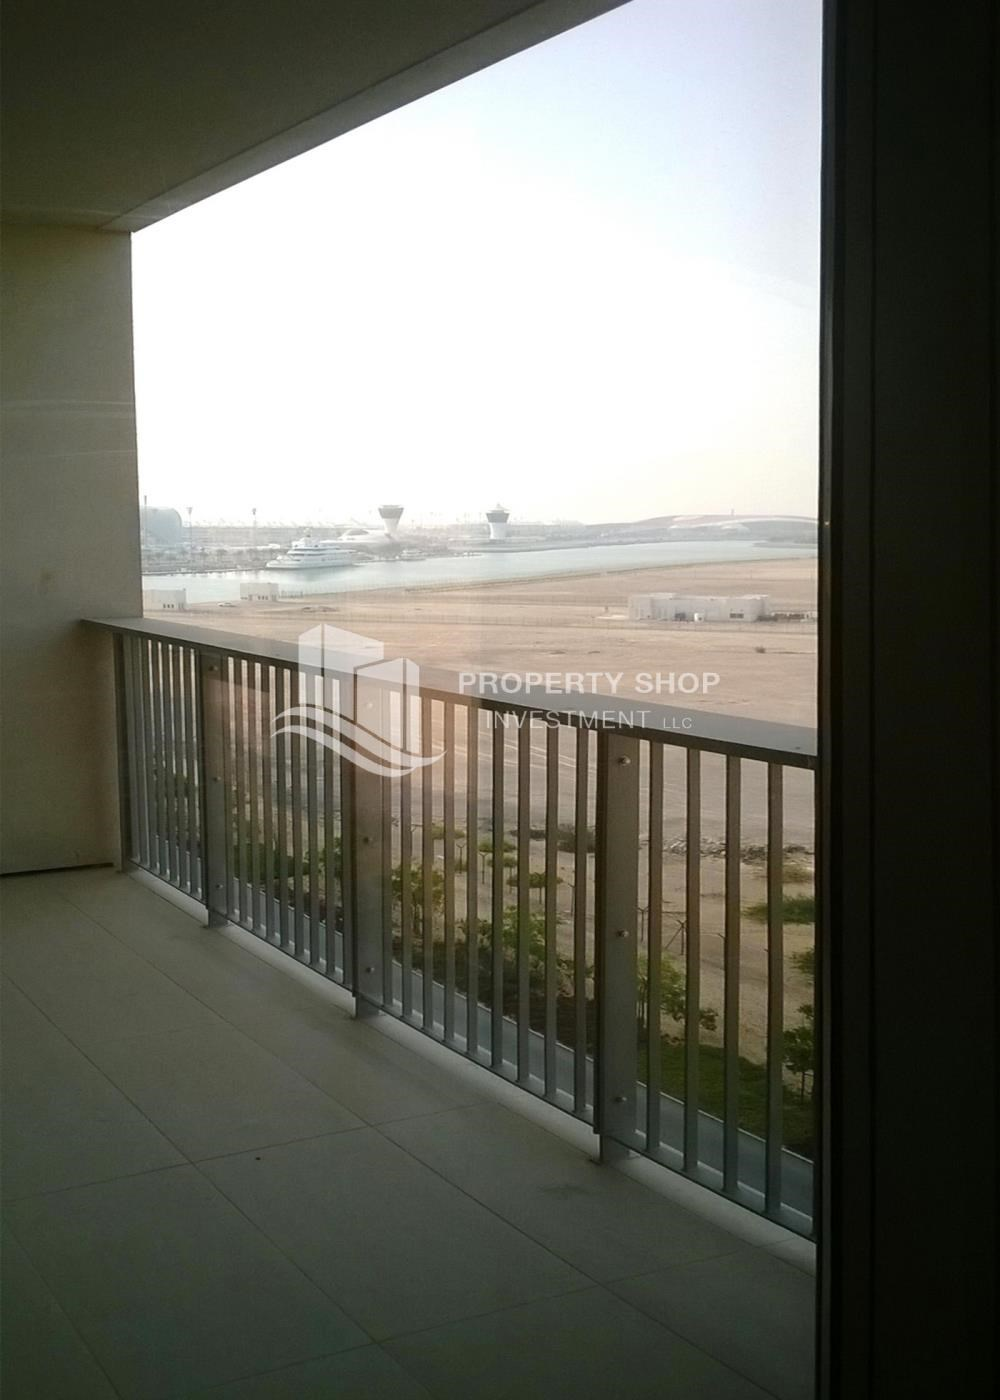 Balcony - 4BR Apt. with Full Sea View, Duplex For sale!